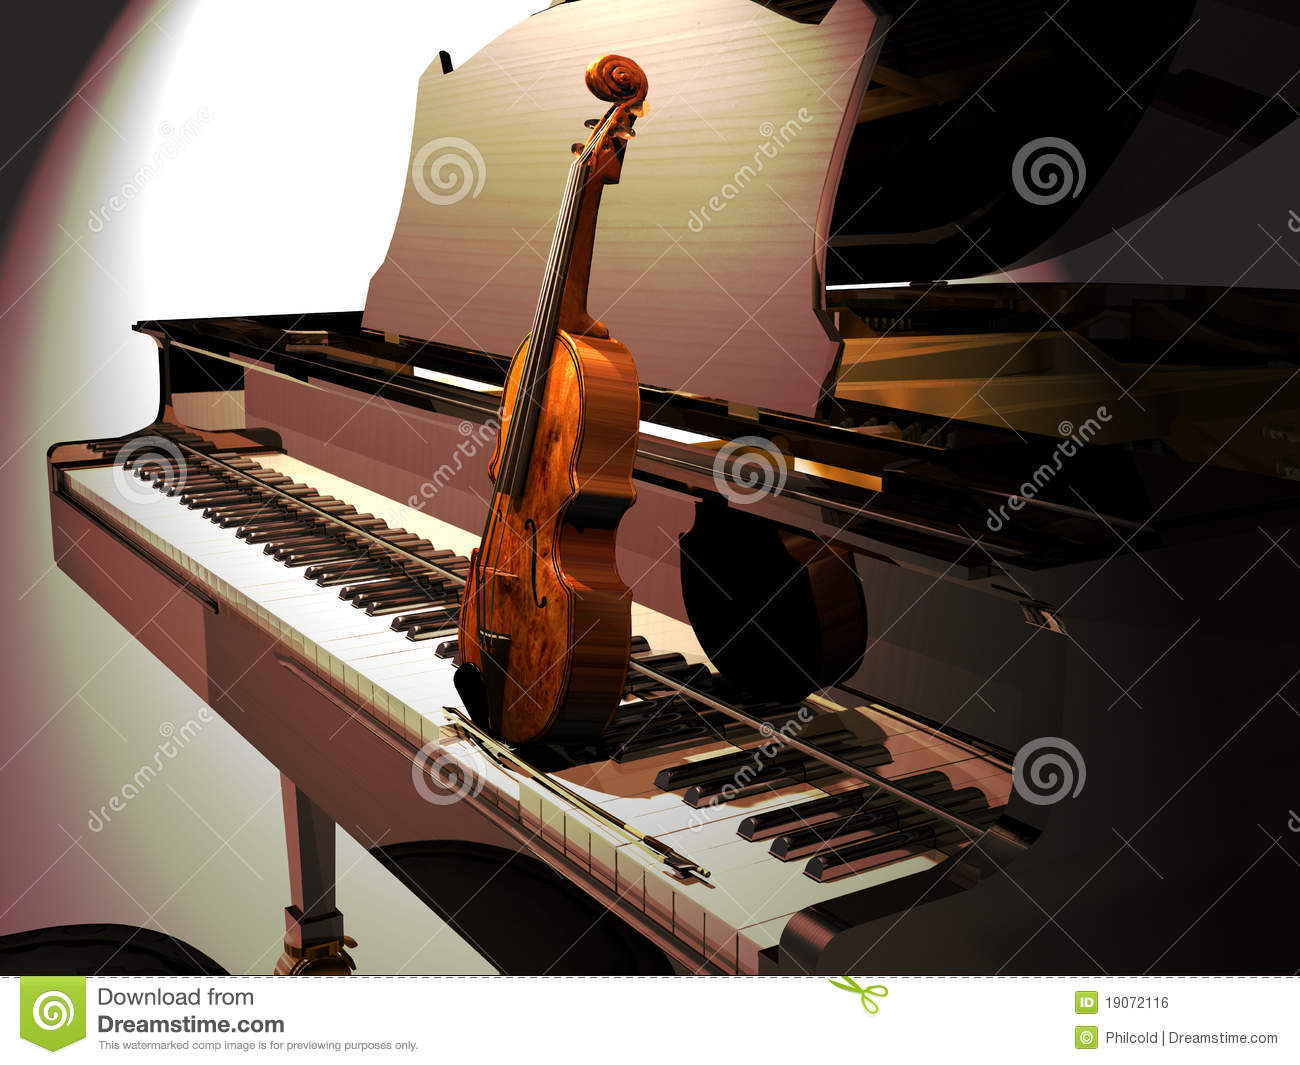 Piano And Violin Concert Royalty Free Stock Image Image  : piano violin concert 19072116 from www.dreamstime.com size 1300 x 1065 jpeg 155kB